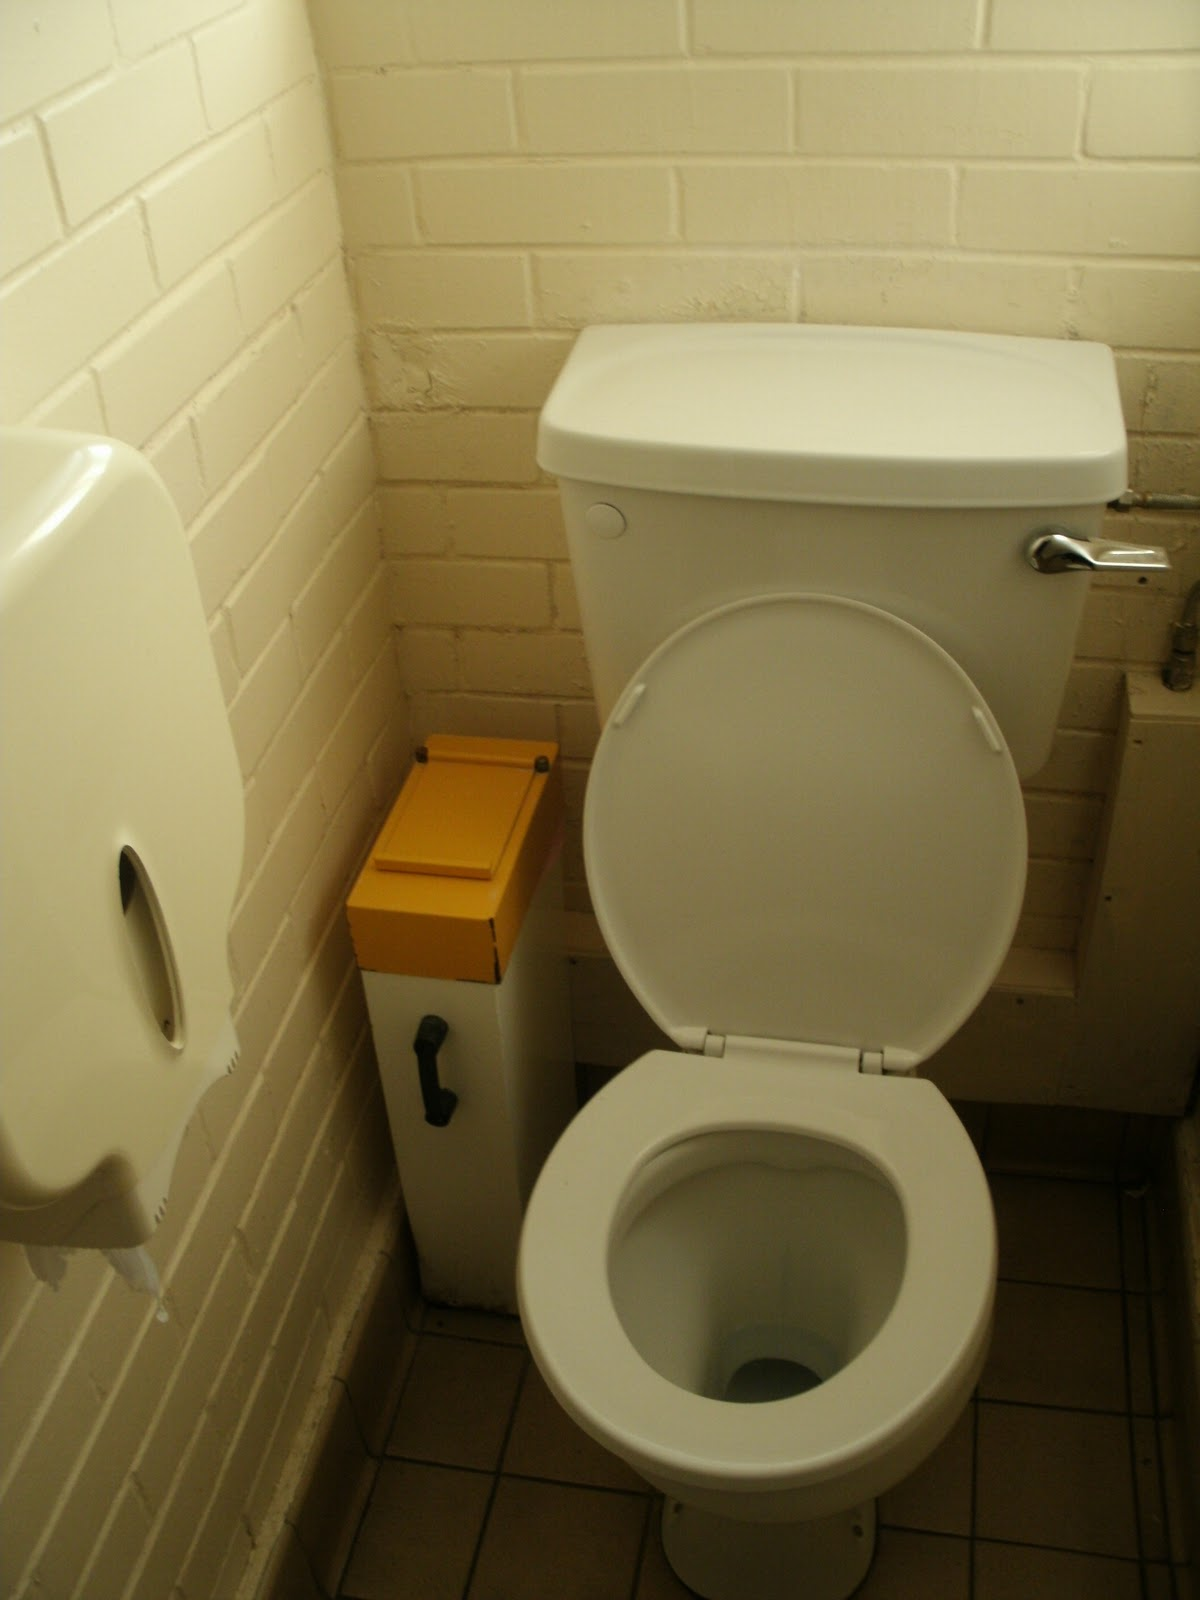 The Privy Counsel (A Bog Blog): A Draining Kind of Day